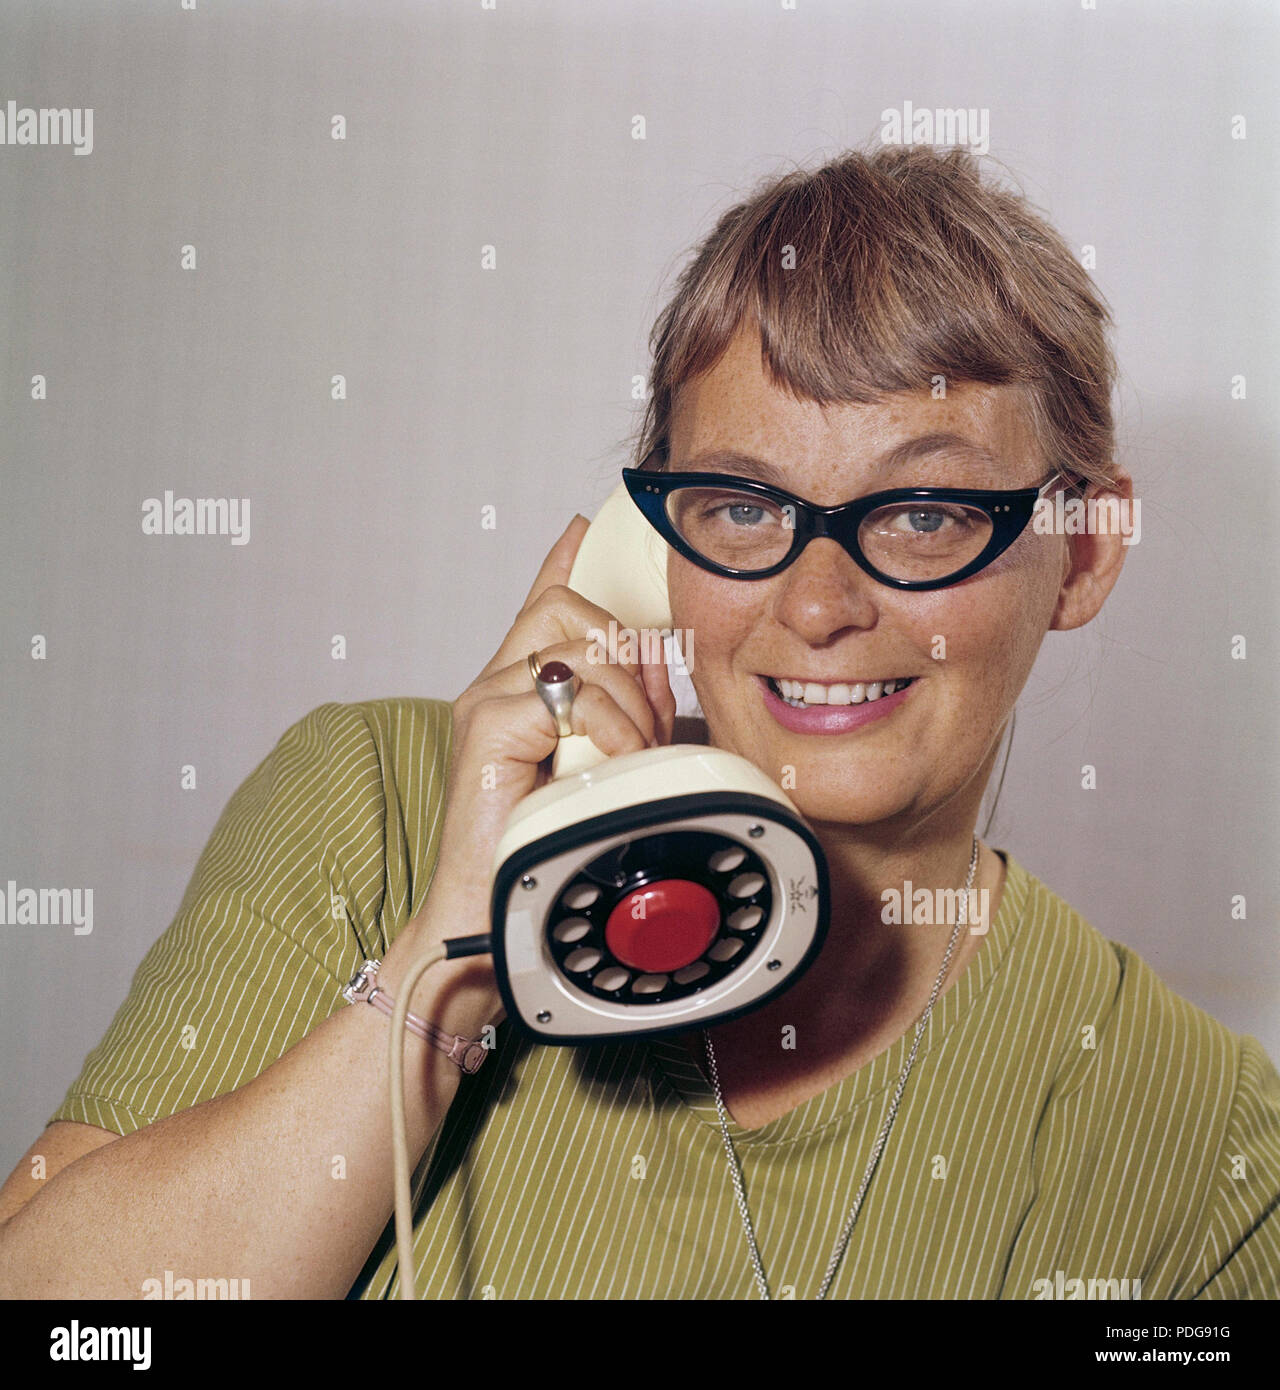 1950s glasses and telephone. A young woman in typical fifties glasses and bows is talking on the telephone.  Swedish on-piece plastic telephone created by Ericsson Company of Sweden. Because of its styling and its influence on future telephone design, the Ericofon is considered one of the most significant industrial designs of the 20th century. The idea was to incorporate the dial and handset into one single unit. The model is also known as the Cobra telephone for its resemblance to a coiled snake, and is now a sought after antique. Stock Photo